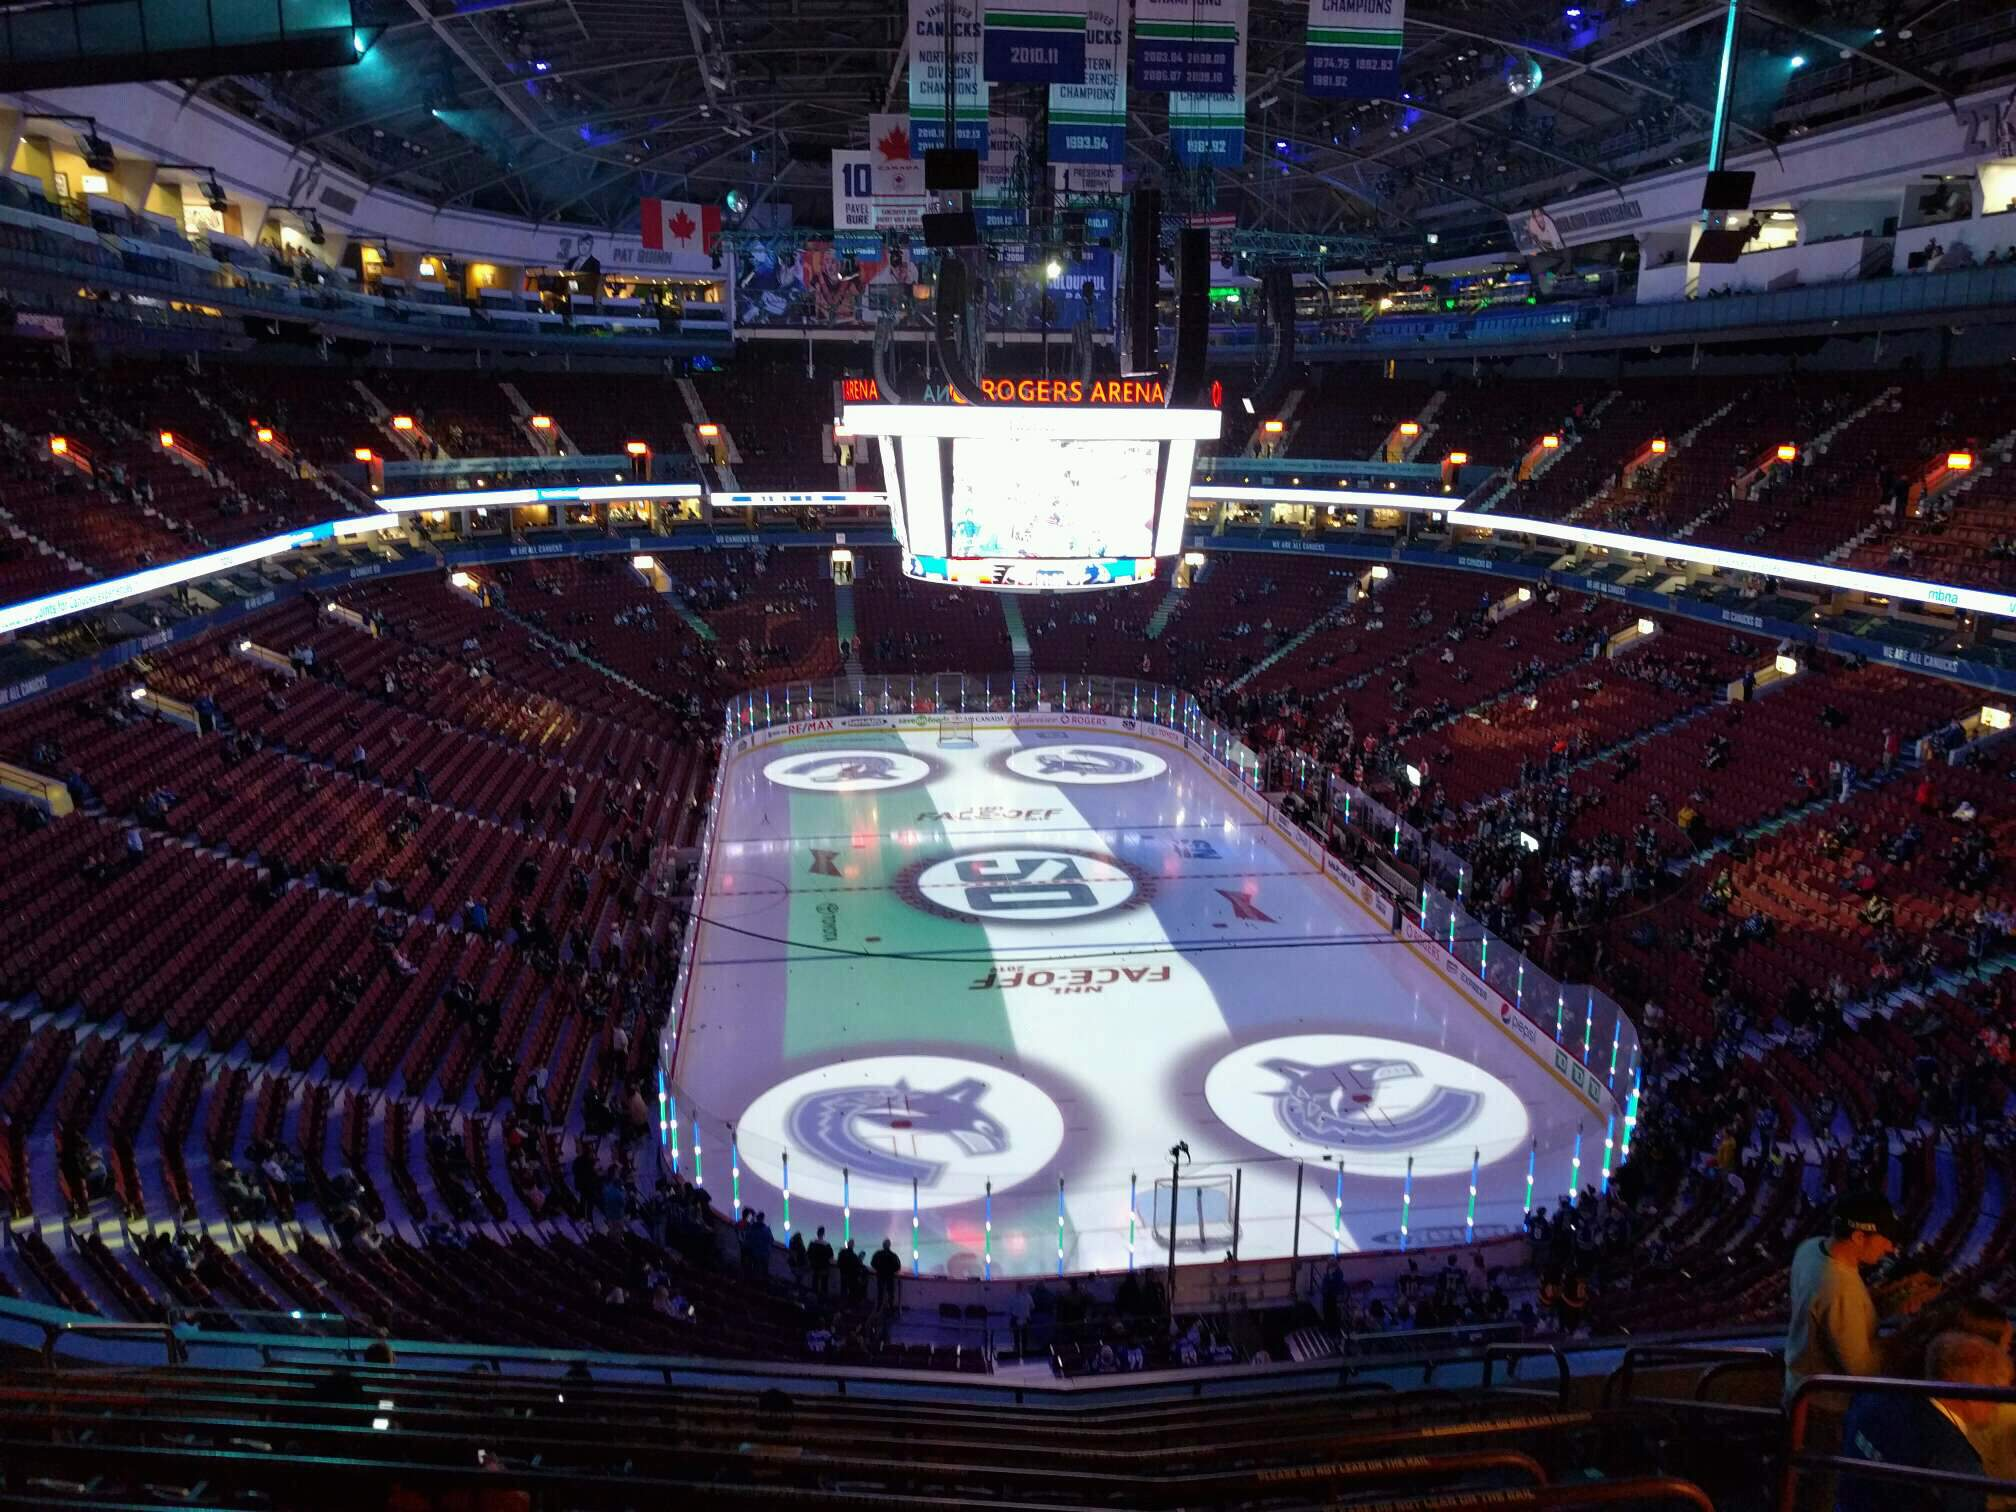 Rogers Arena Section 301 Row 11 Seat 108